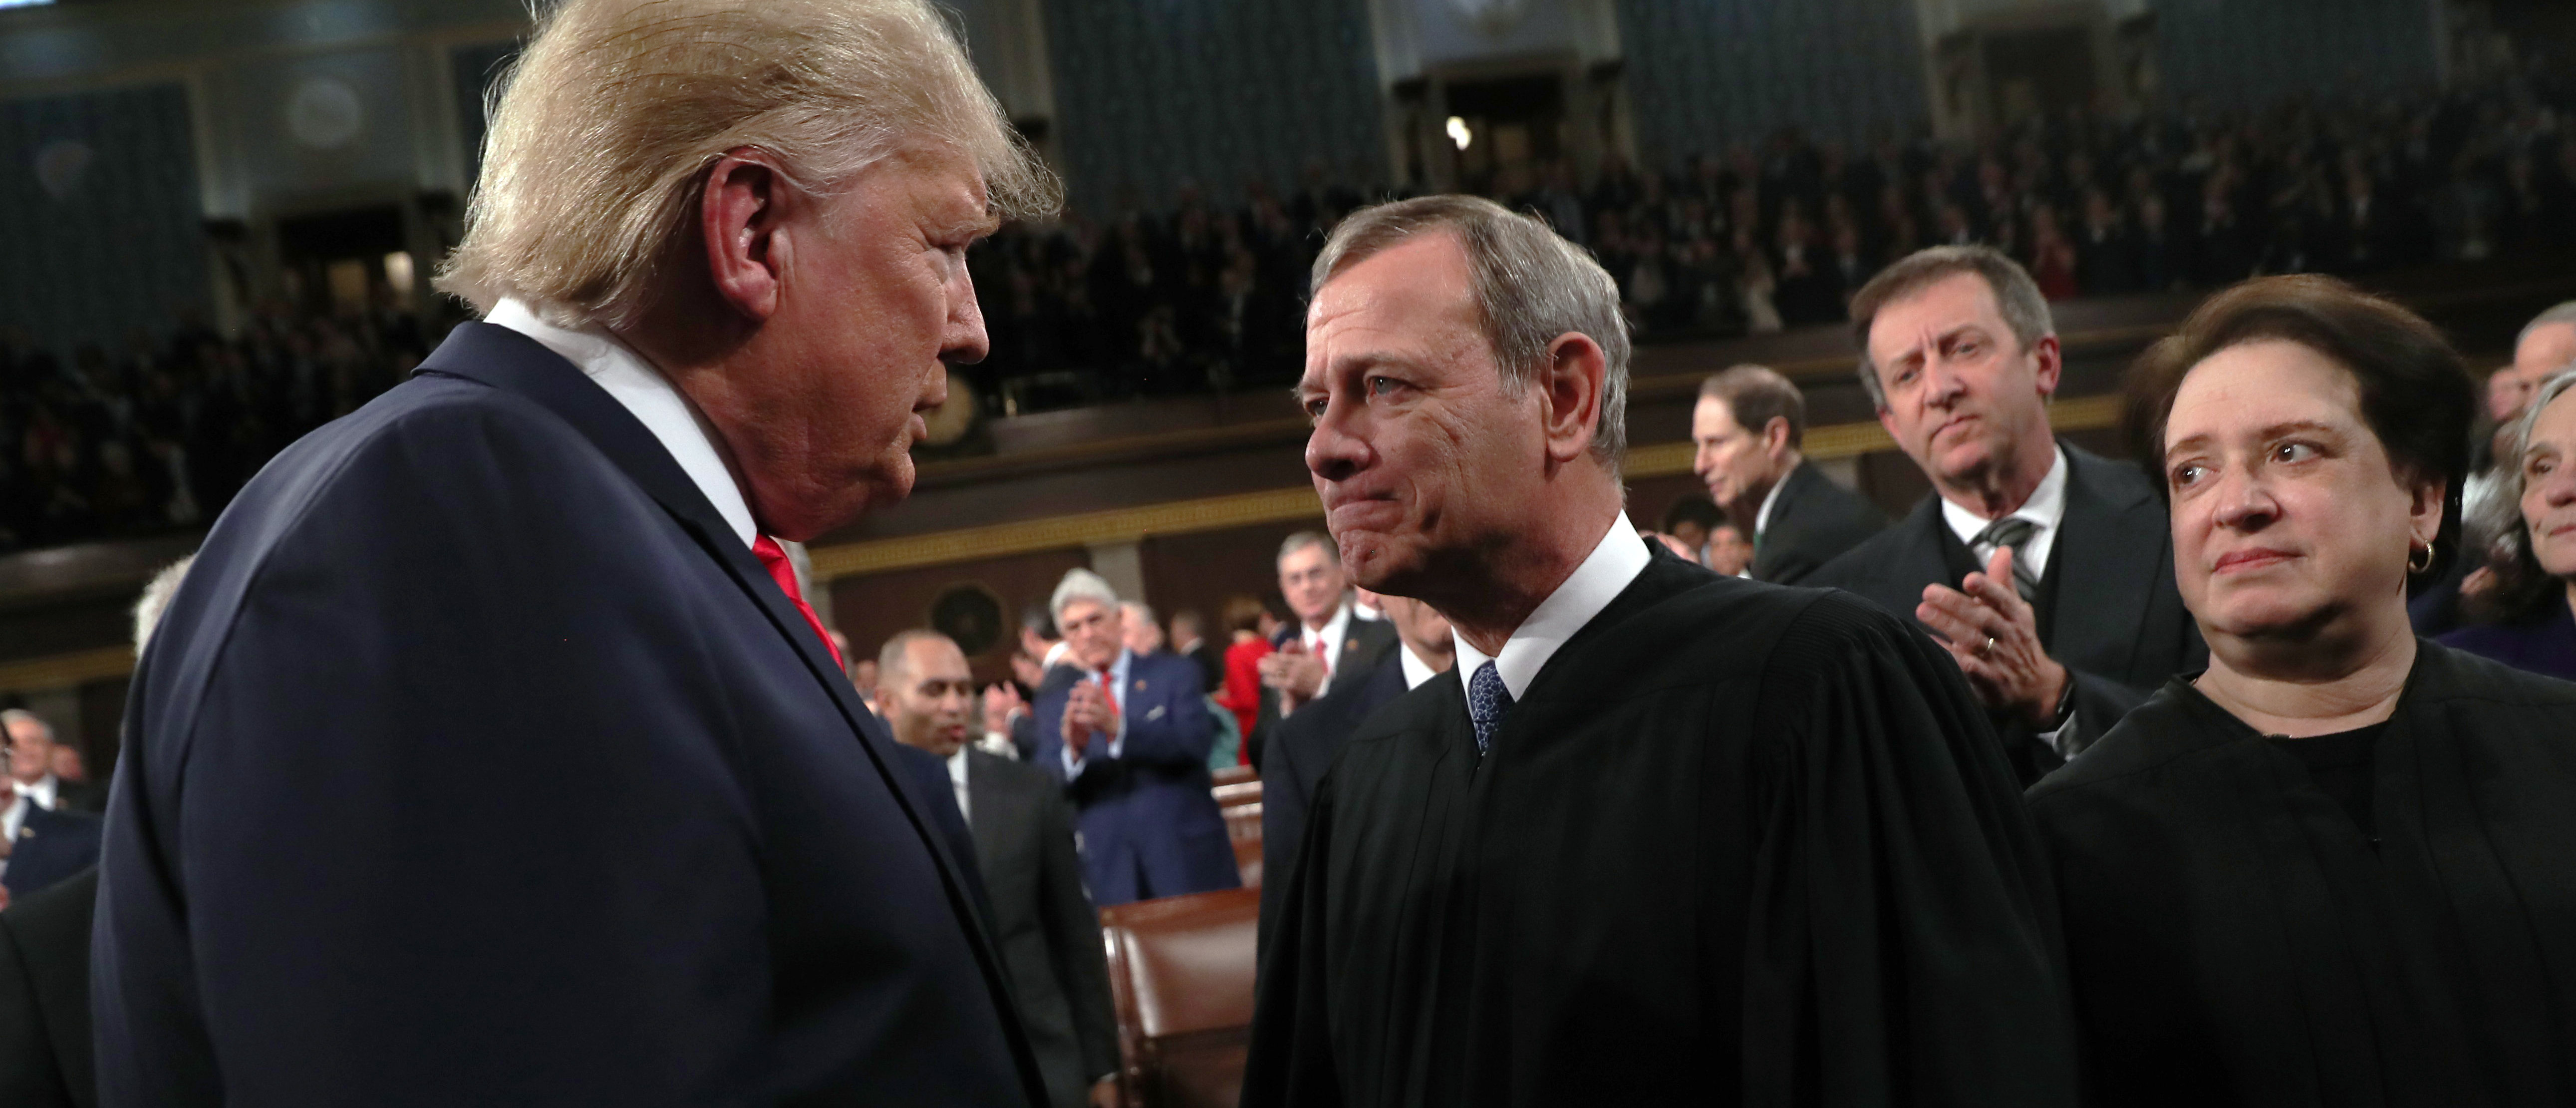 President Donald Trump and Chief Justice John Roberts at the State of the Union on February 4, 2020. (Leah Millis/Pool/Getty Images)